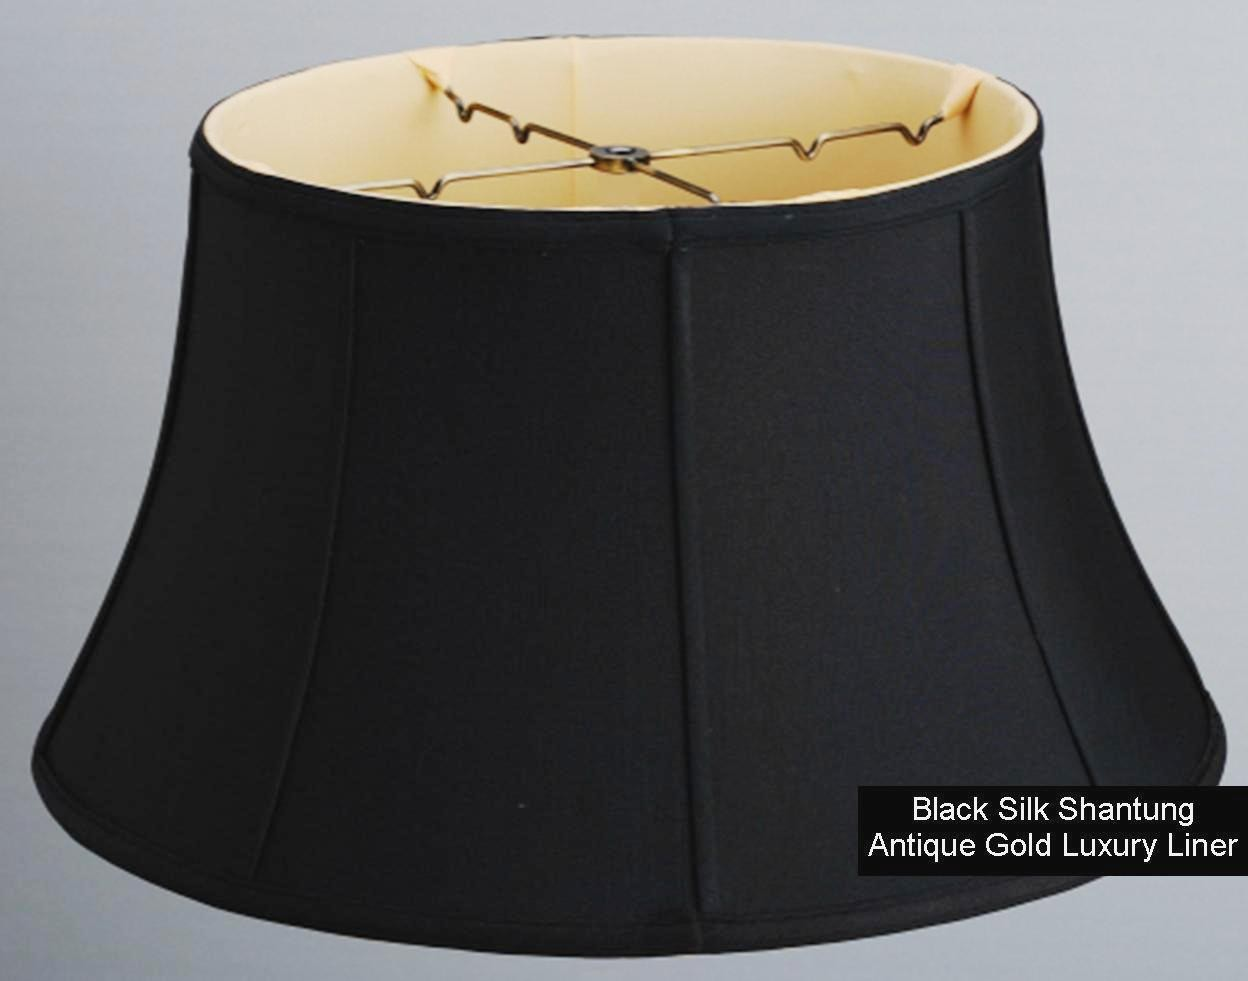 Black silk floor lamp shade lamp shade pro black silk floor lamp shade 17 19w aloadofball Choice Image